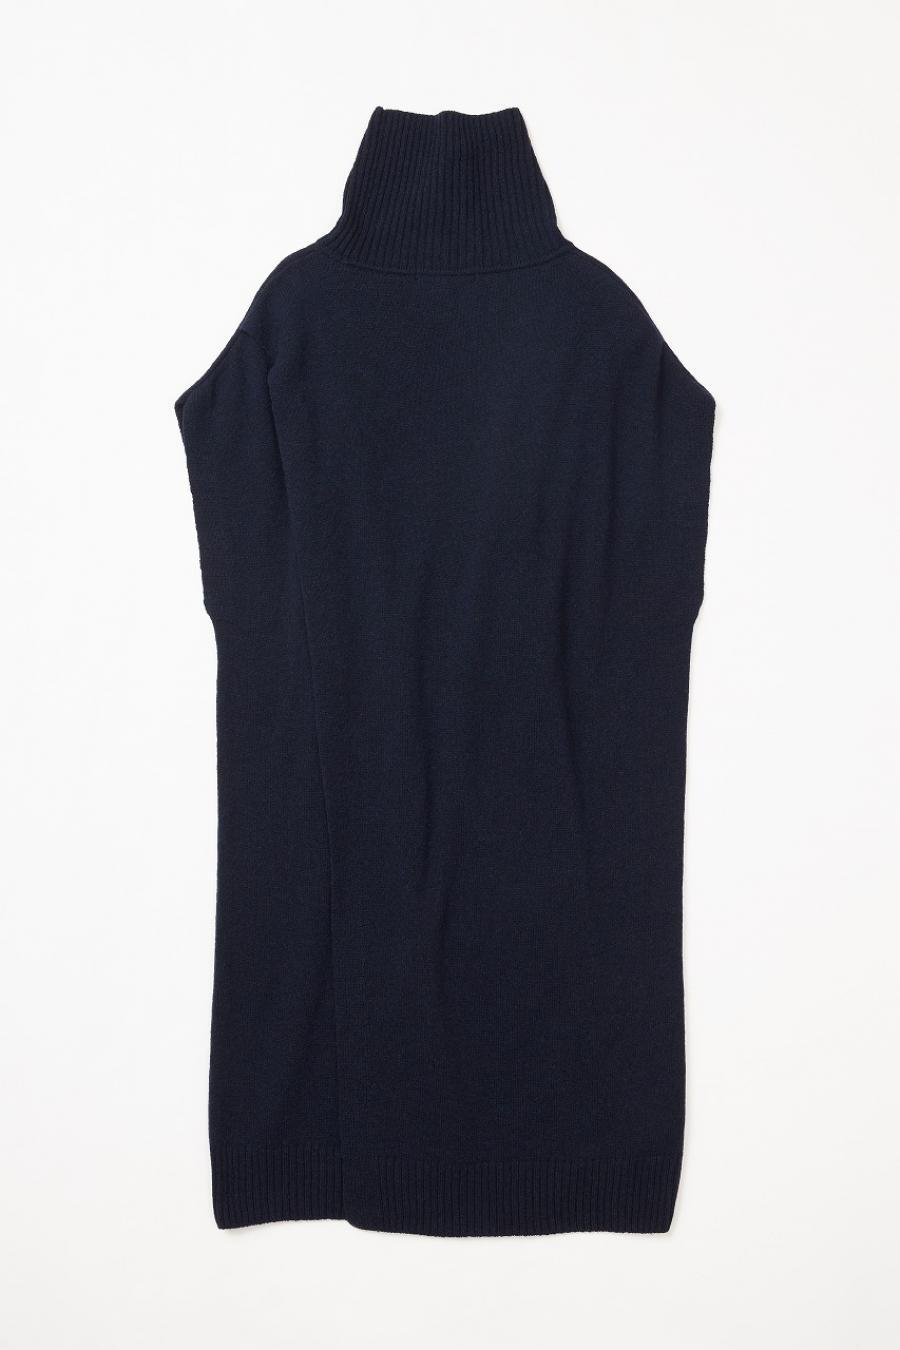 Turtleneck Sleeveless Long Sweater